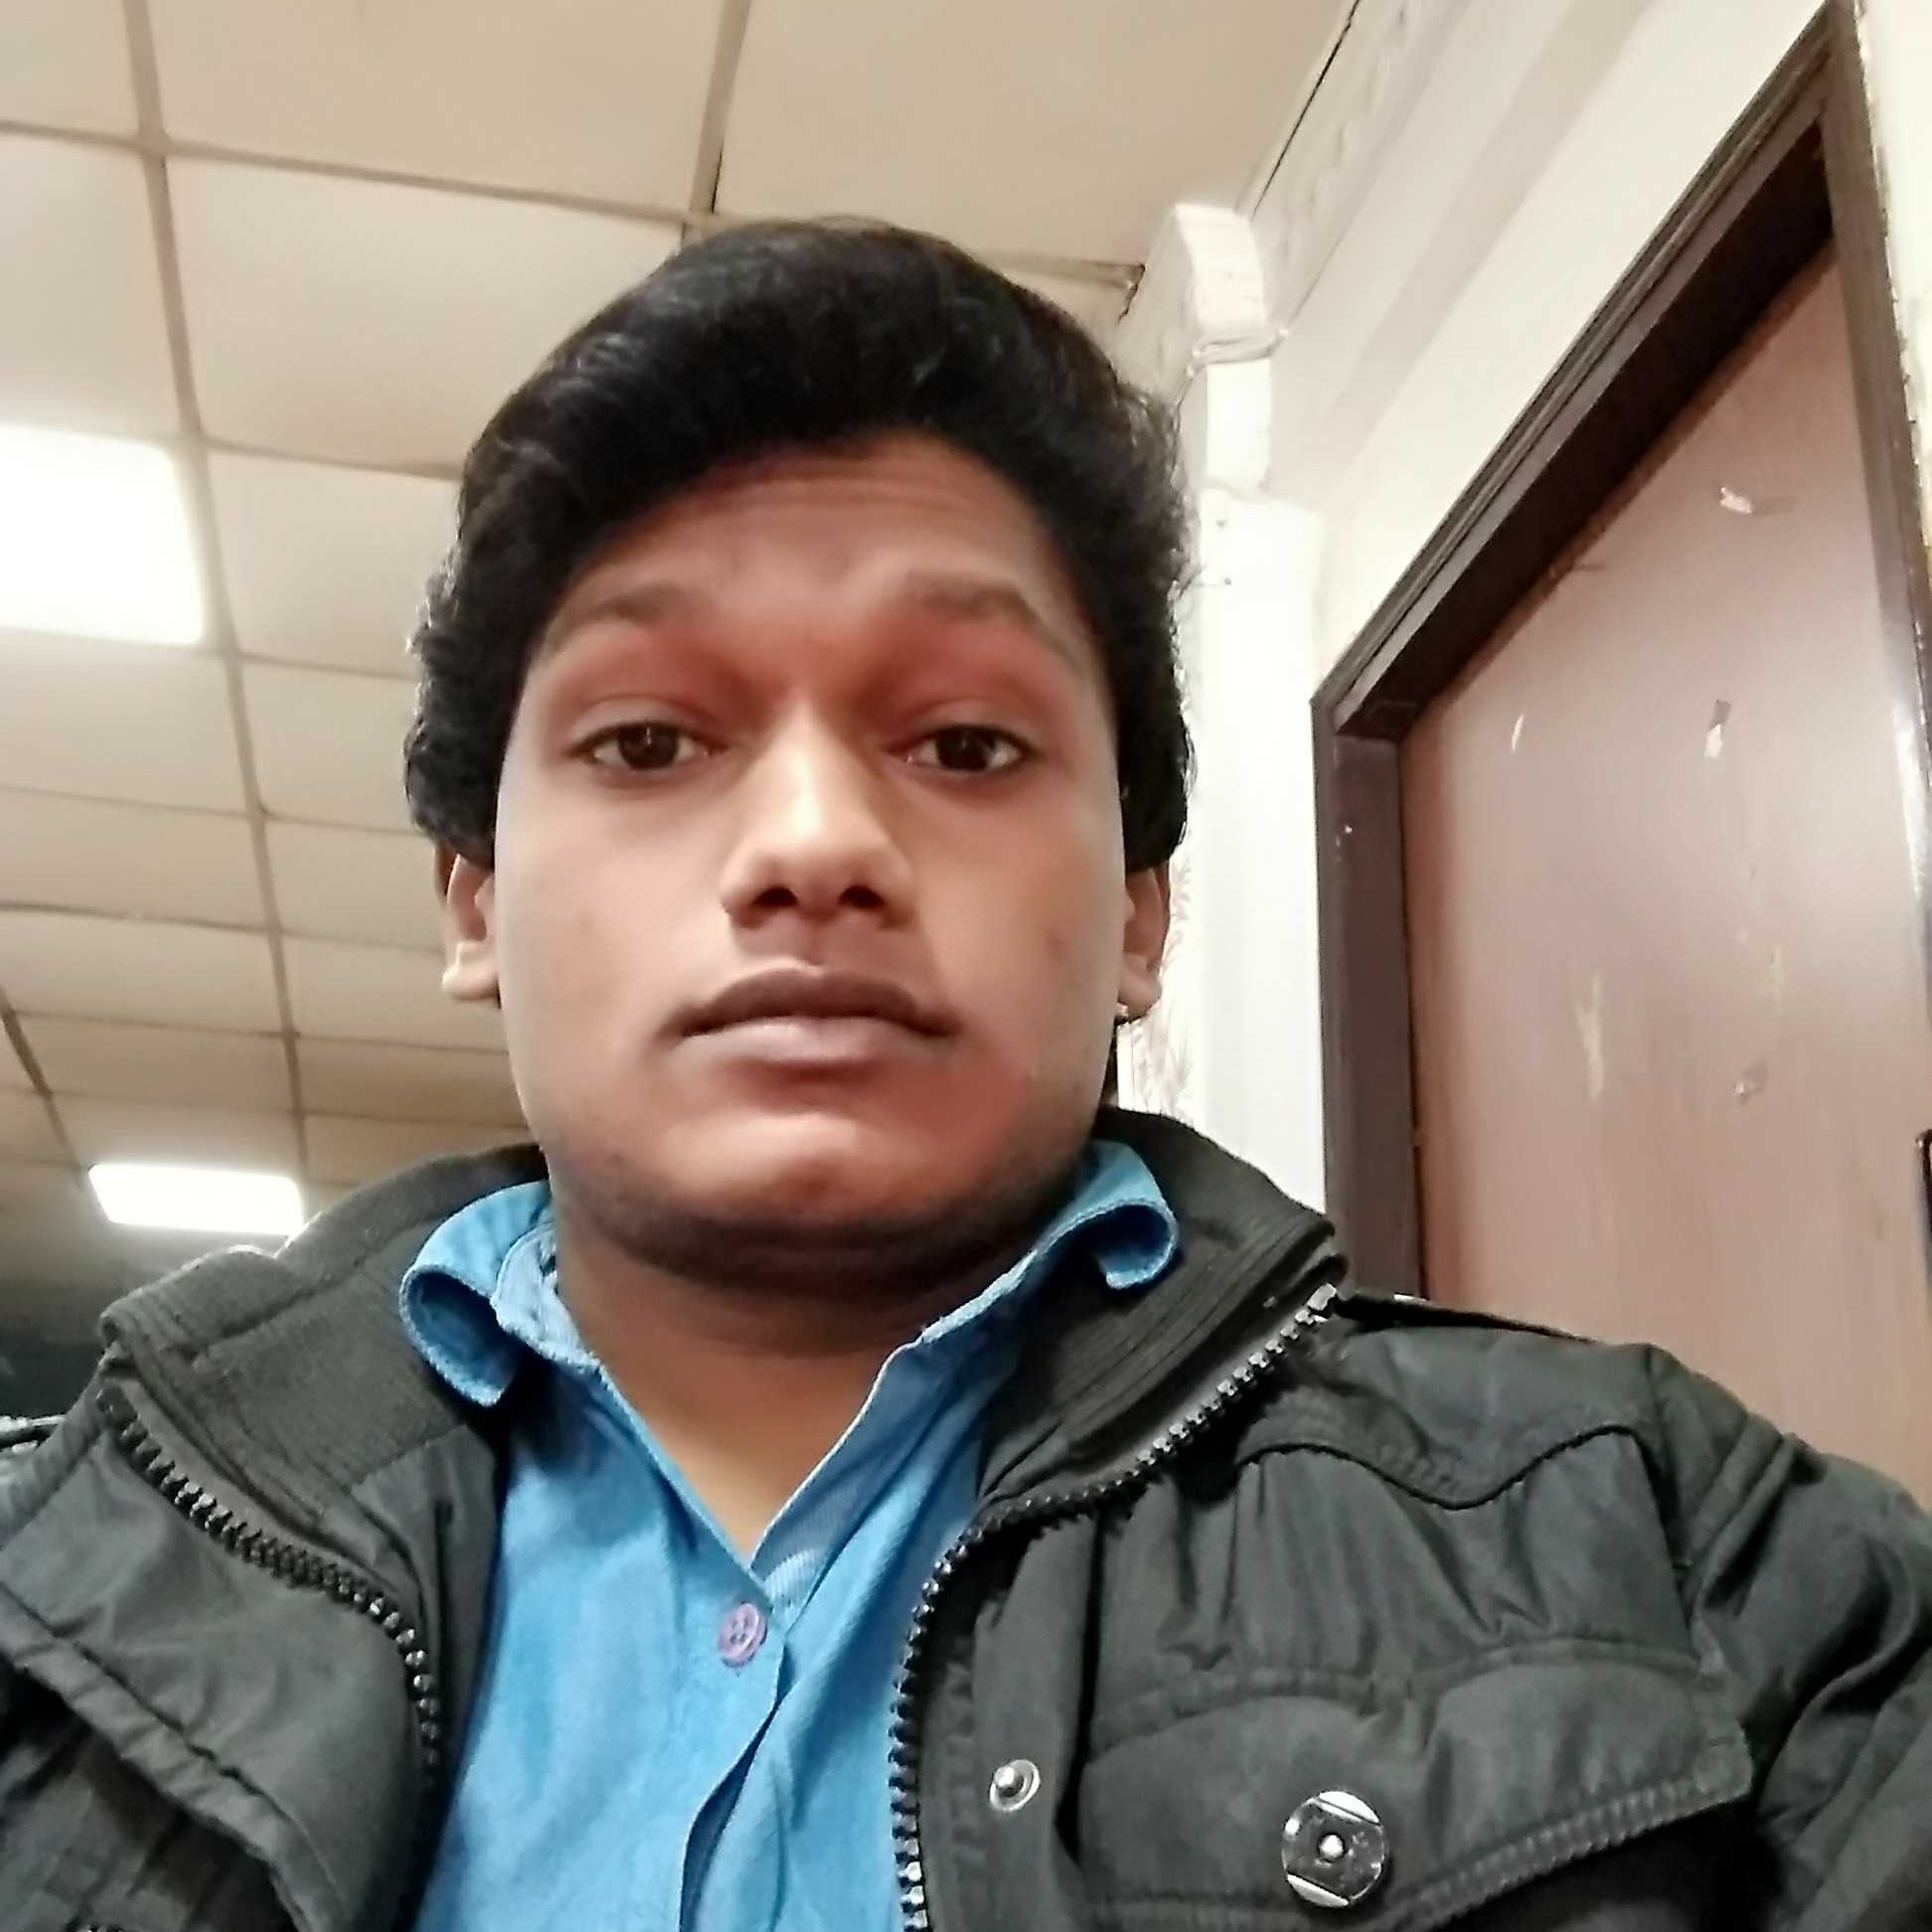 Pk Chaudhary ||Atheist || Realist|| B.sc(H) chemistry KMC(DU) || M.A POL. SCIENCE (IGNOU) || POSTAL ASSISTANT IN MINISTRY OF COMMUNICATION||  write poem and shayari for passion|| Yourquote|| NOJOTO||